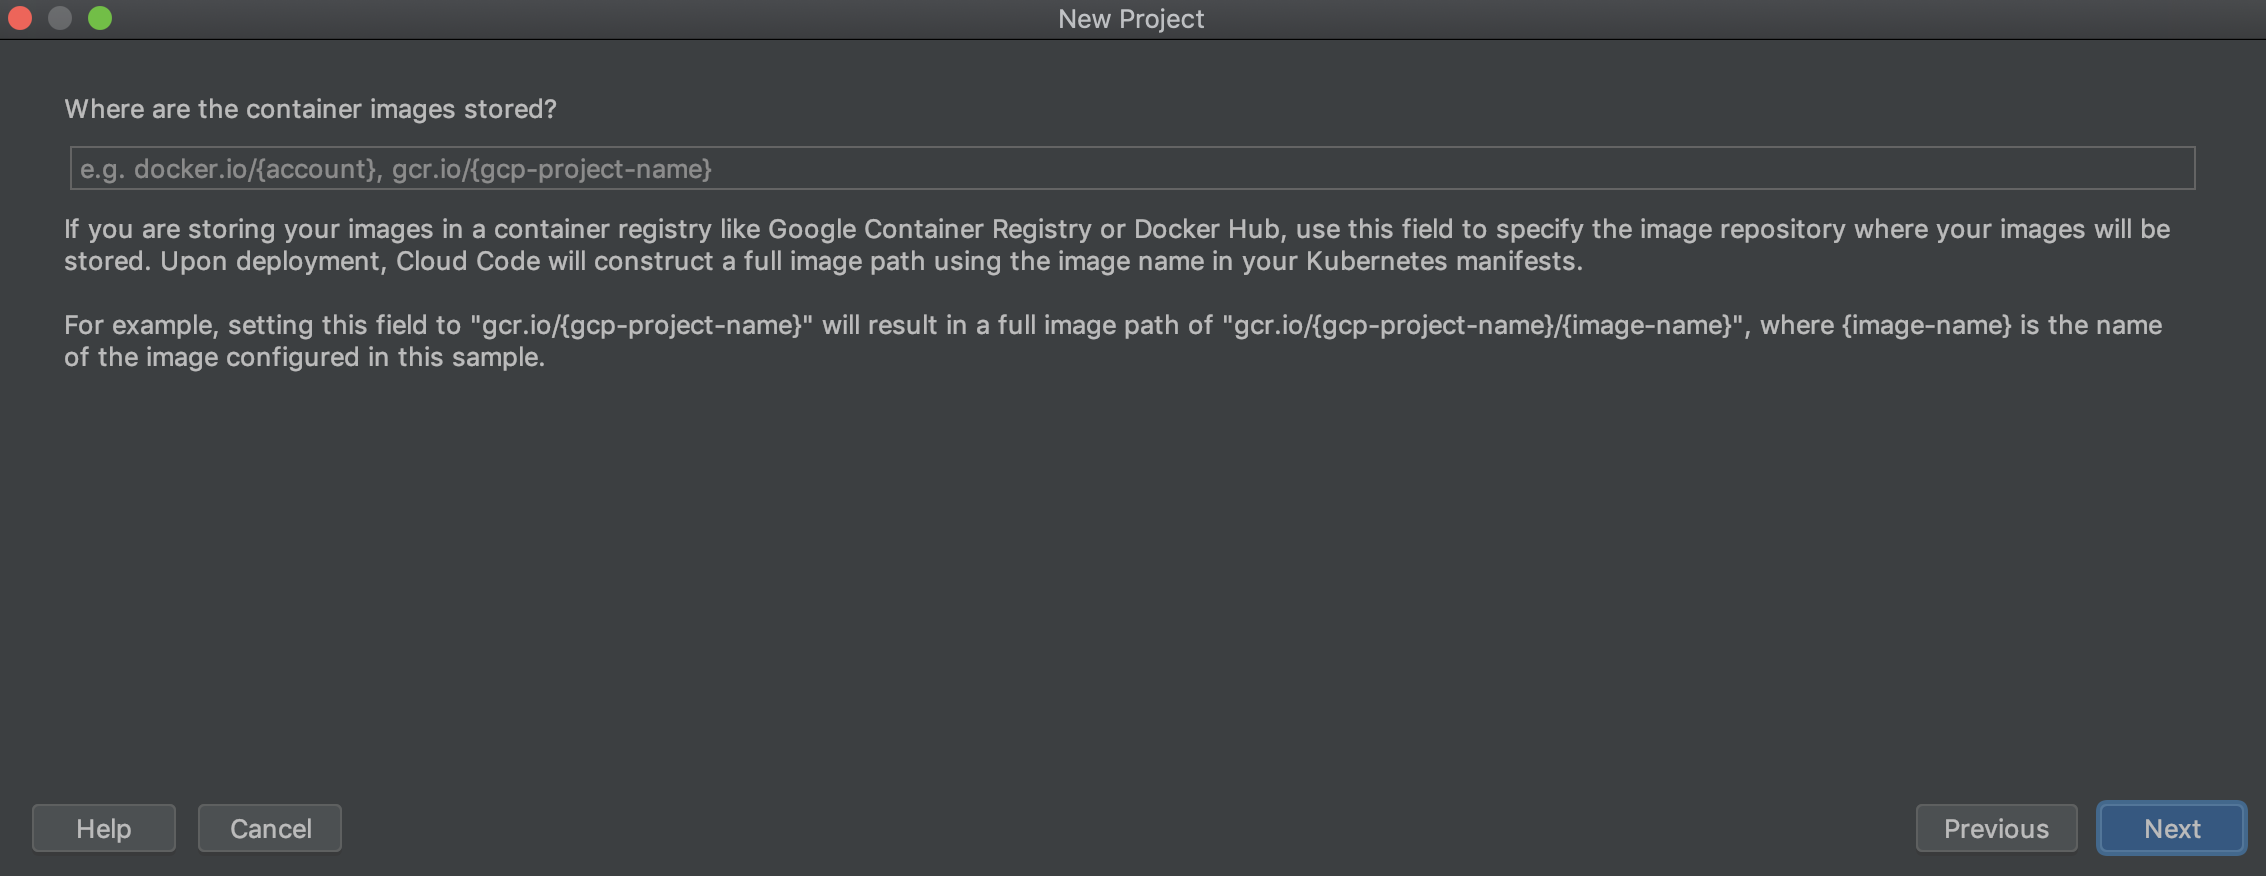 Specify your default image repository in the field using the format gcr.io/{gcp-project-name} or docker.io/{account}